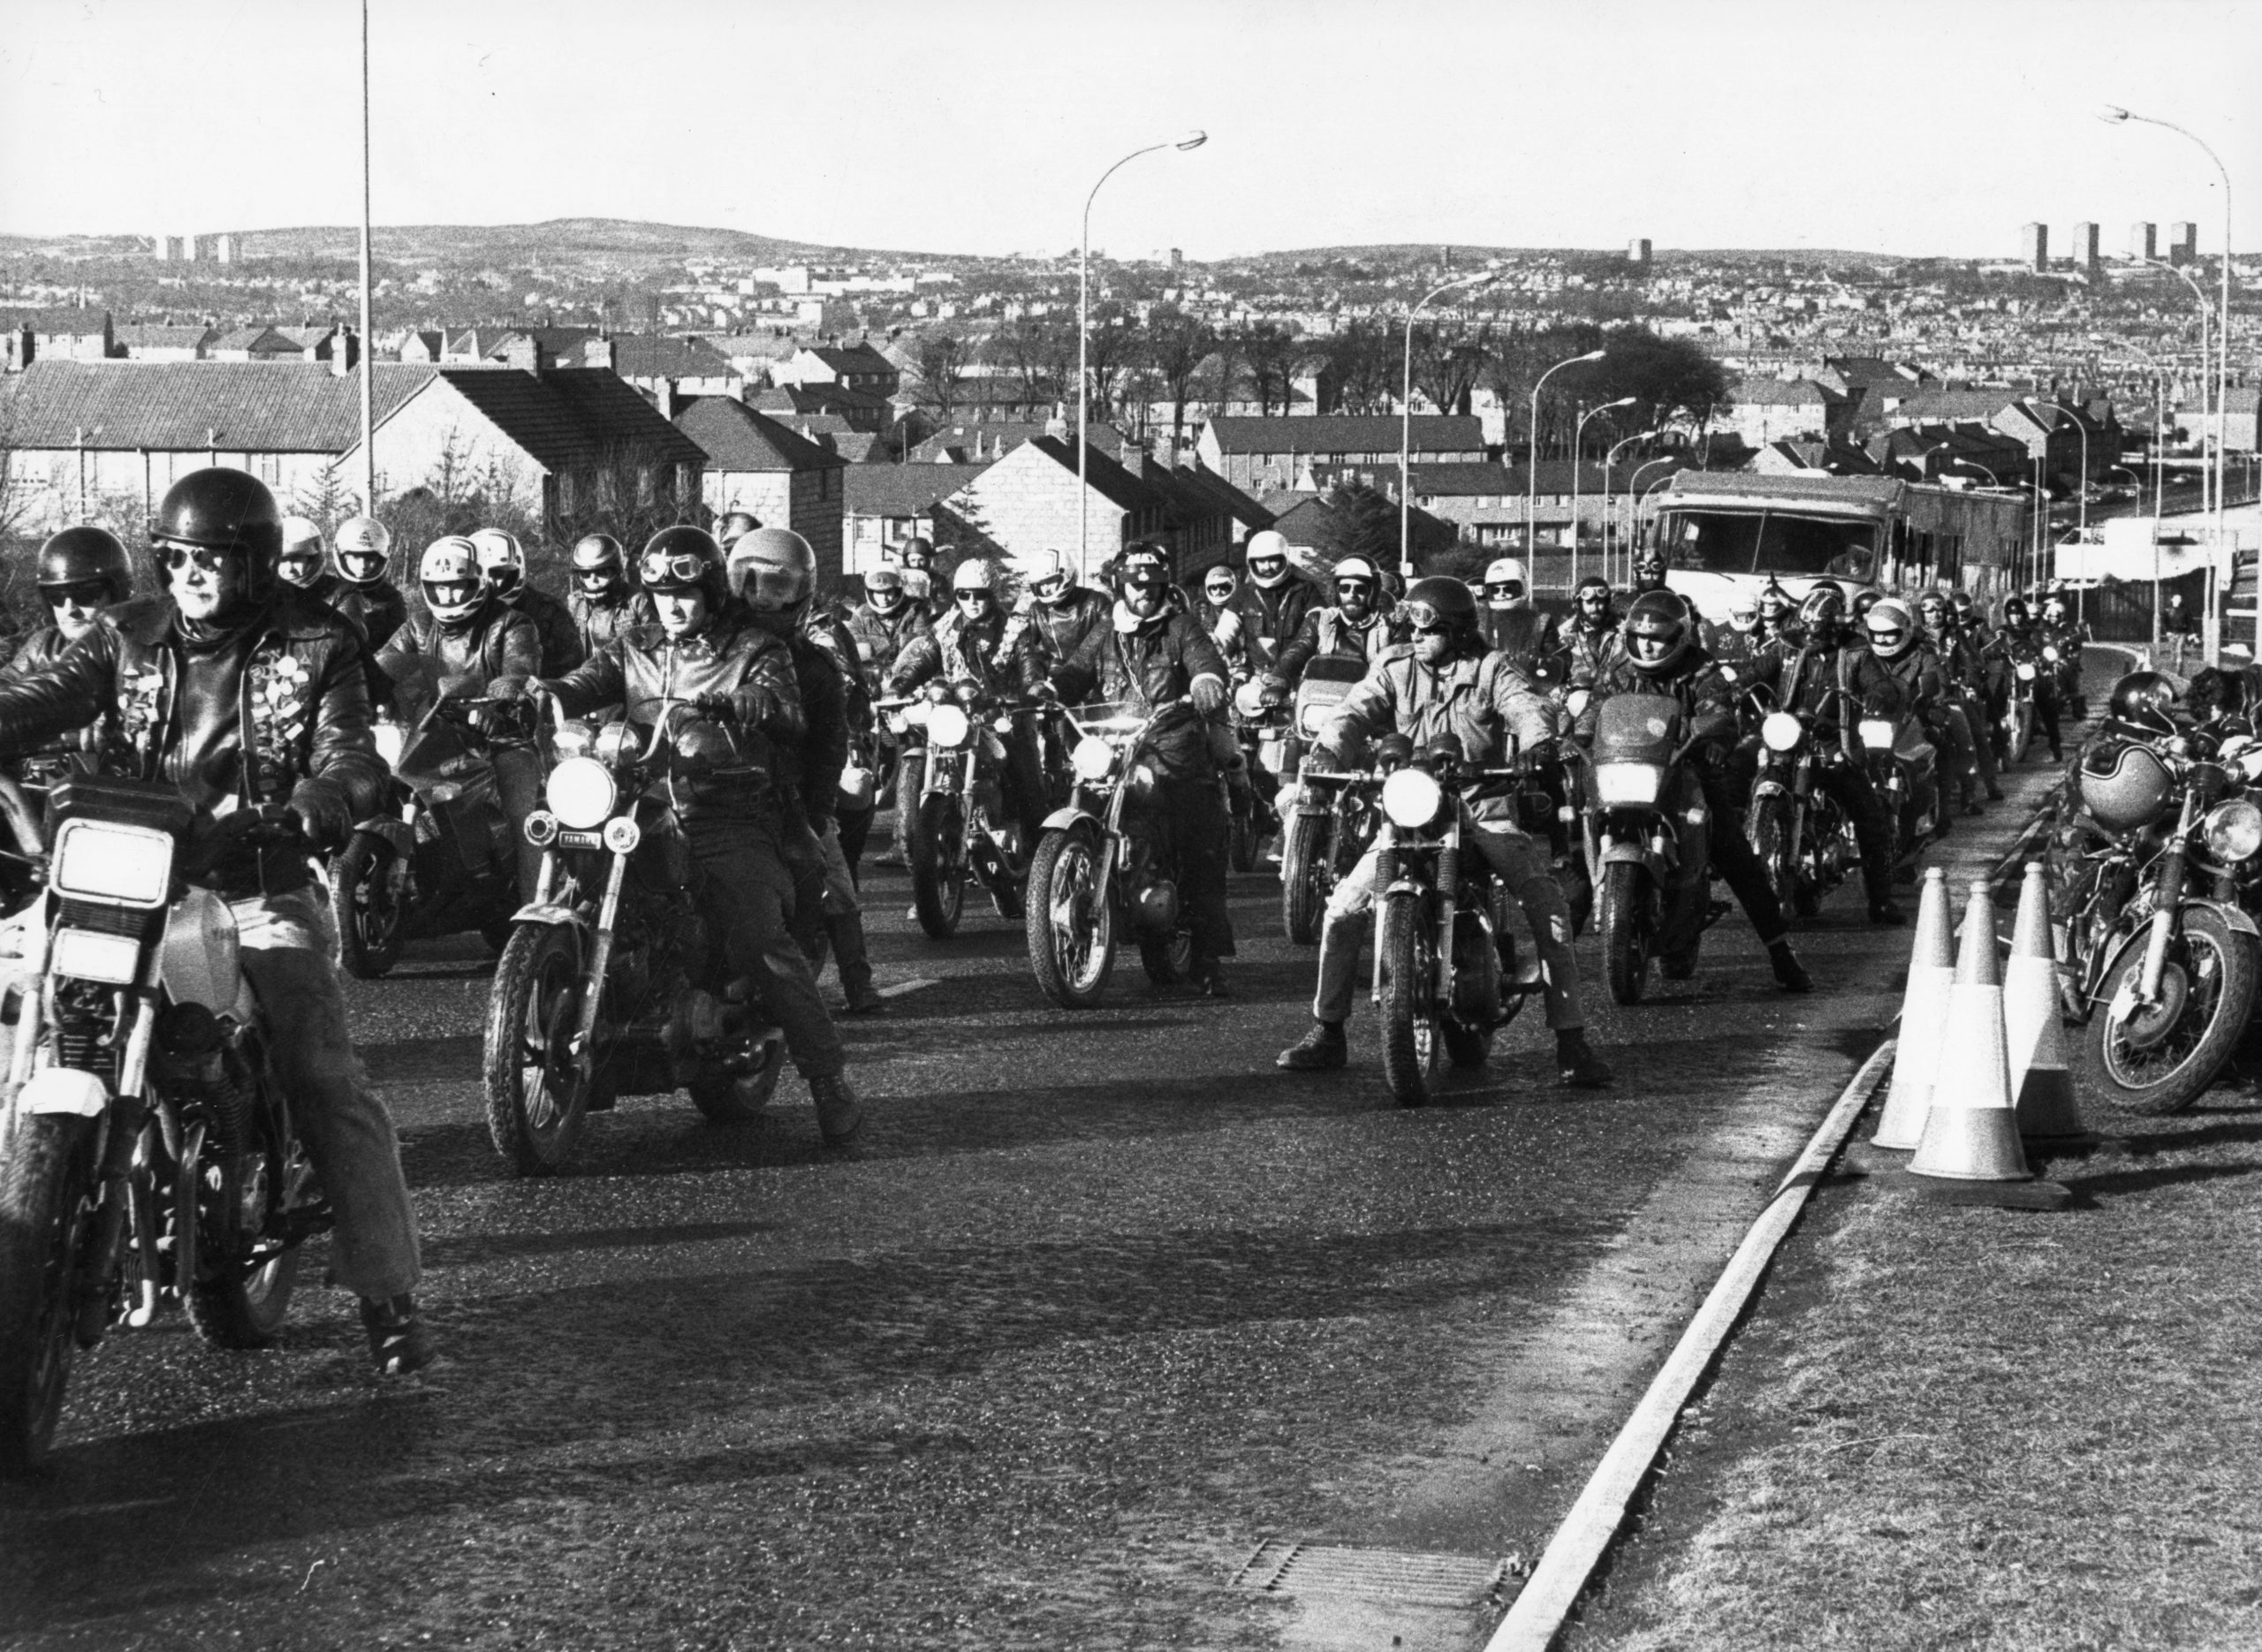 Altens in 1990 when local bike enthusiasts  were recruited as extras to play a biker gang for the filming  of BBC TV series Your Cheatin' Heart.